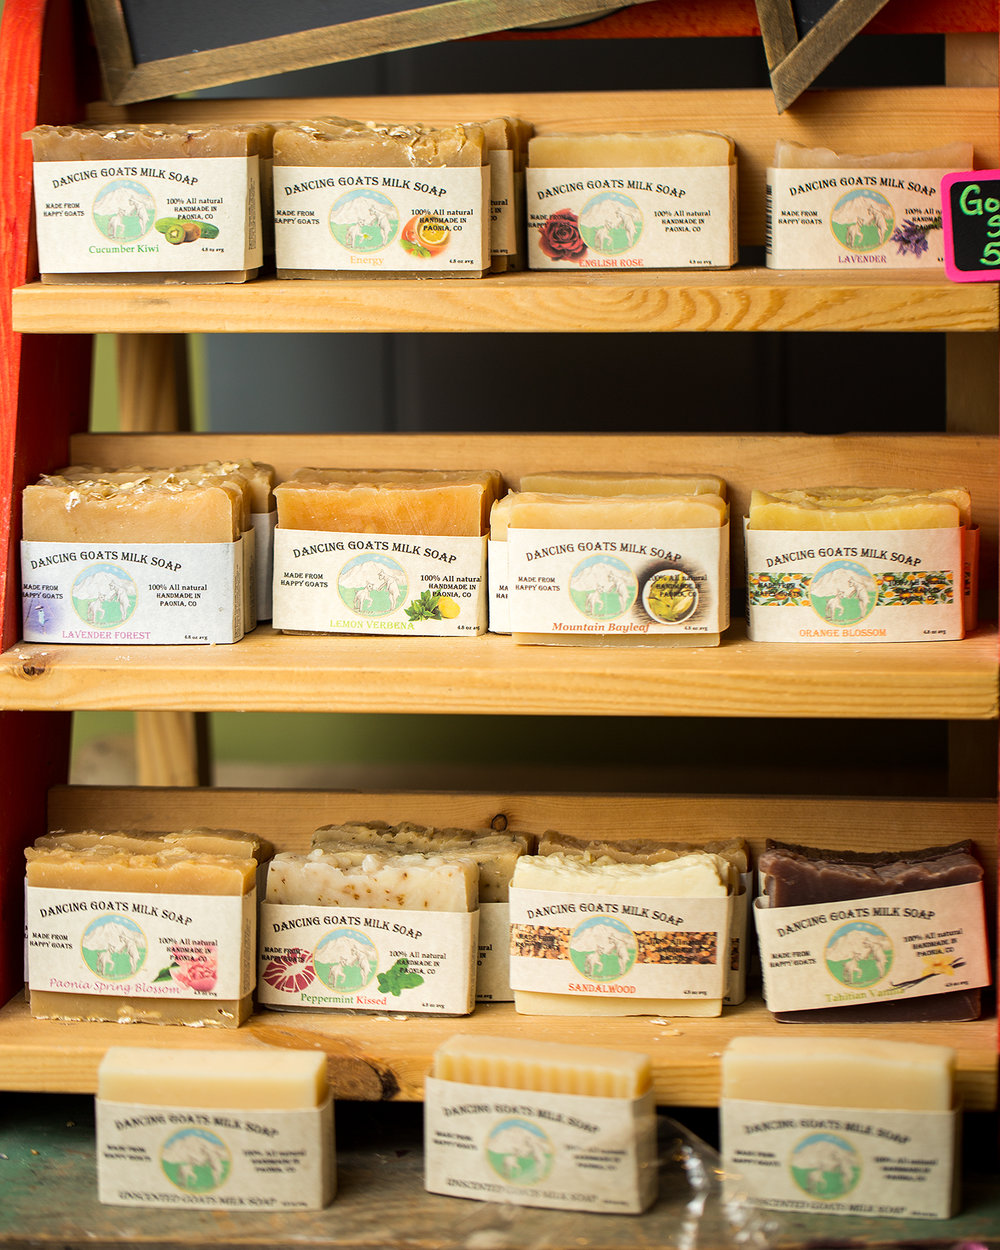 Dancing Goats Milk Soap is another wonderful Paonia company that makes great soaps and lotions